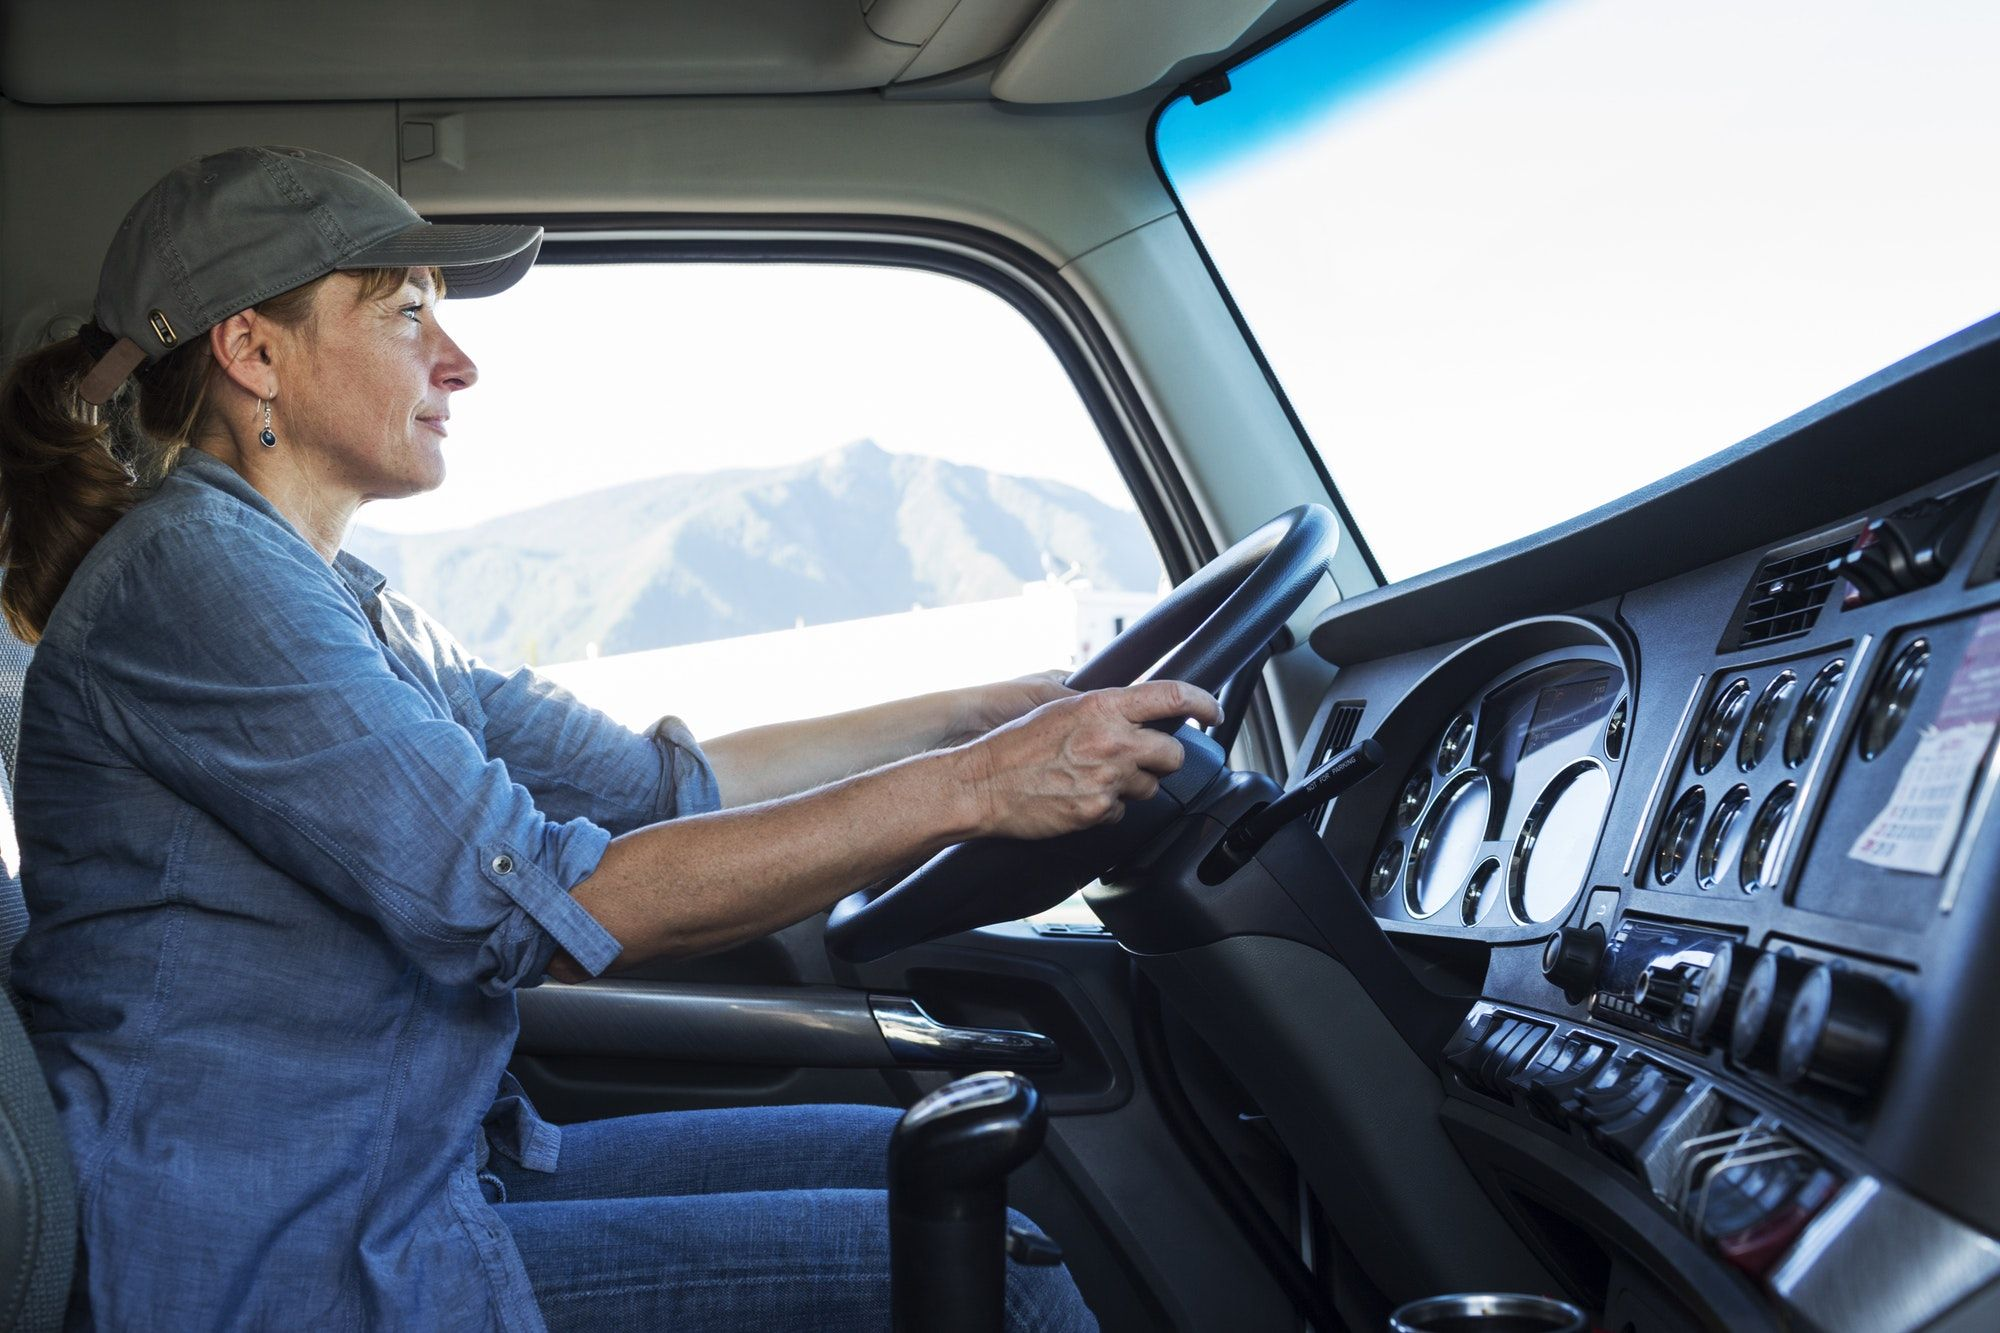 Caucasian woman truck driver in the cab of her commercial truck at a truck stop